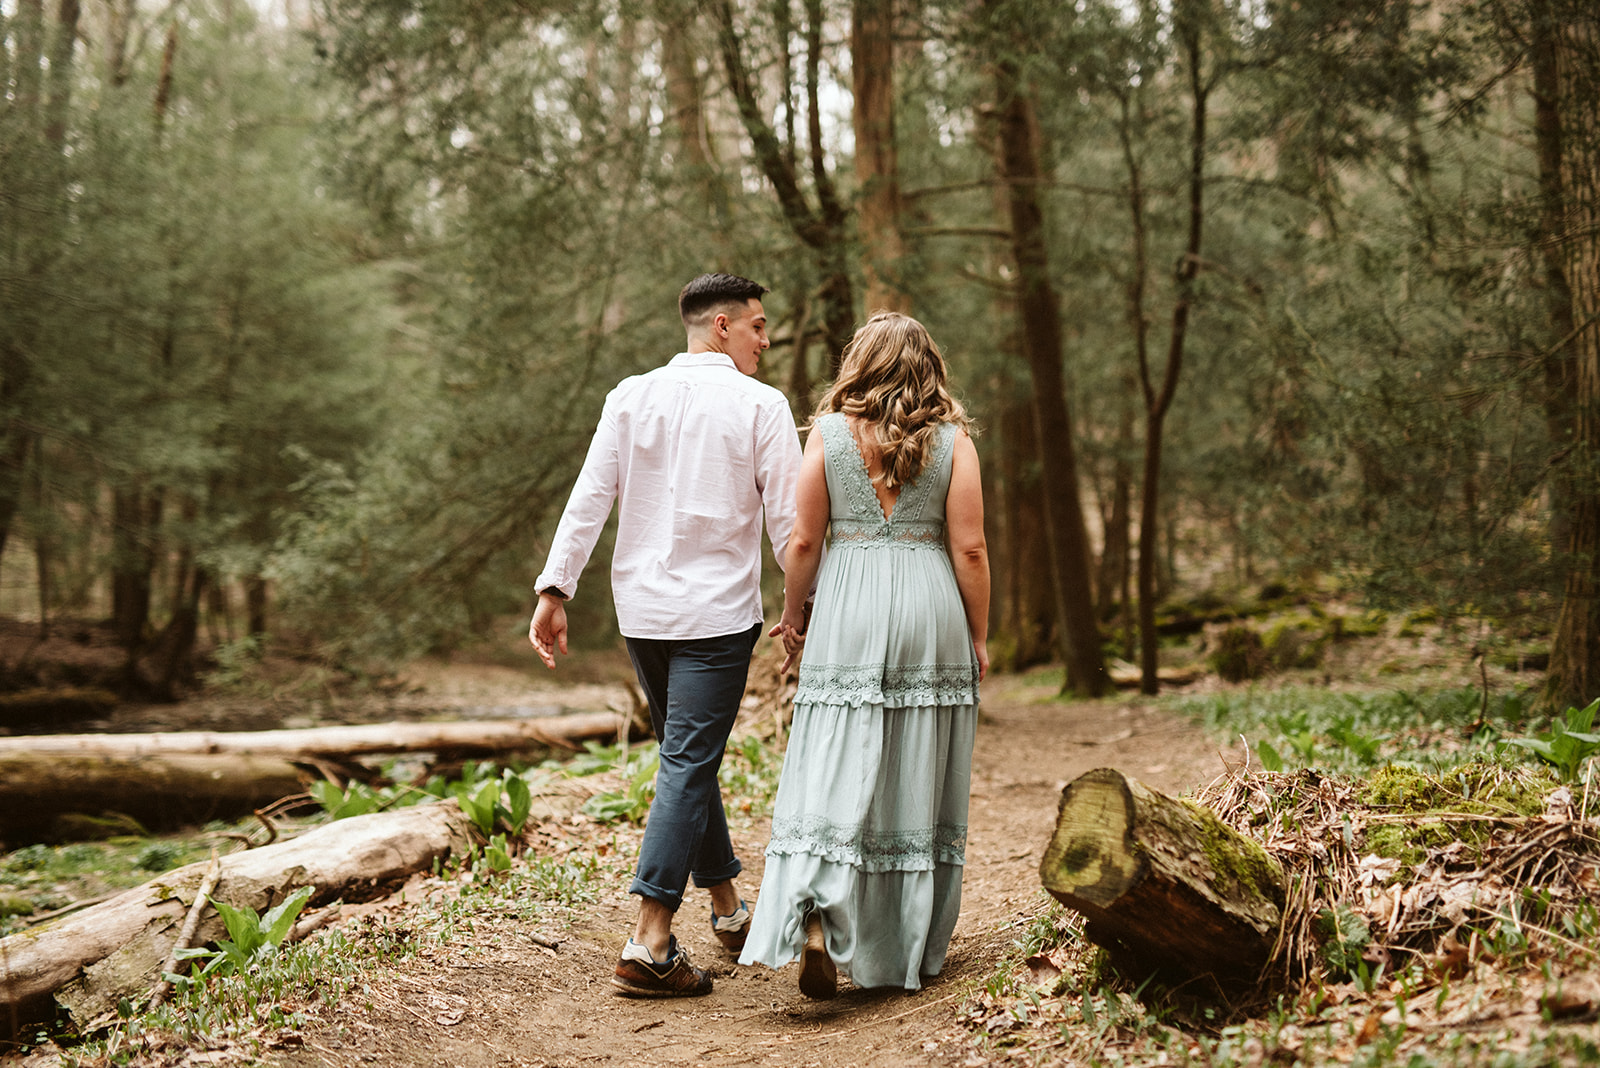 Woodland forest engagement session in Pennsylvania.